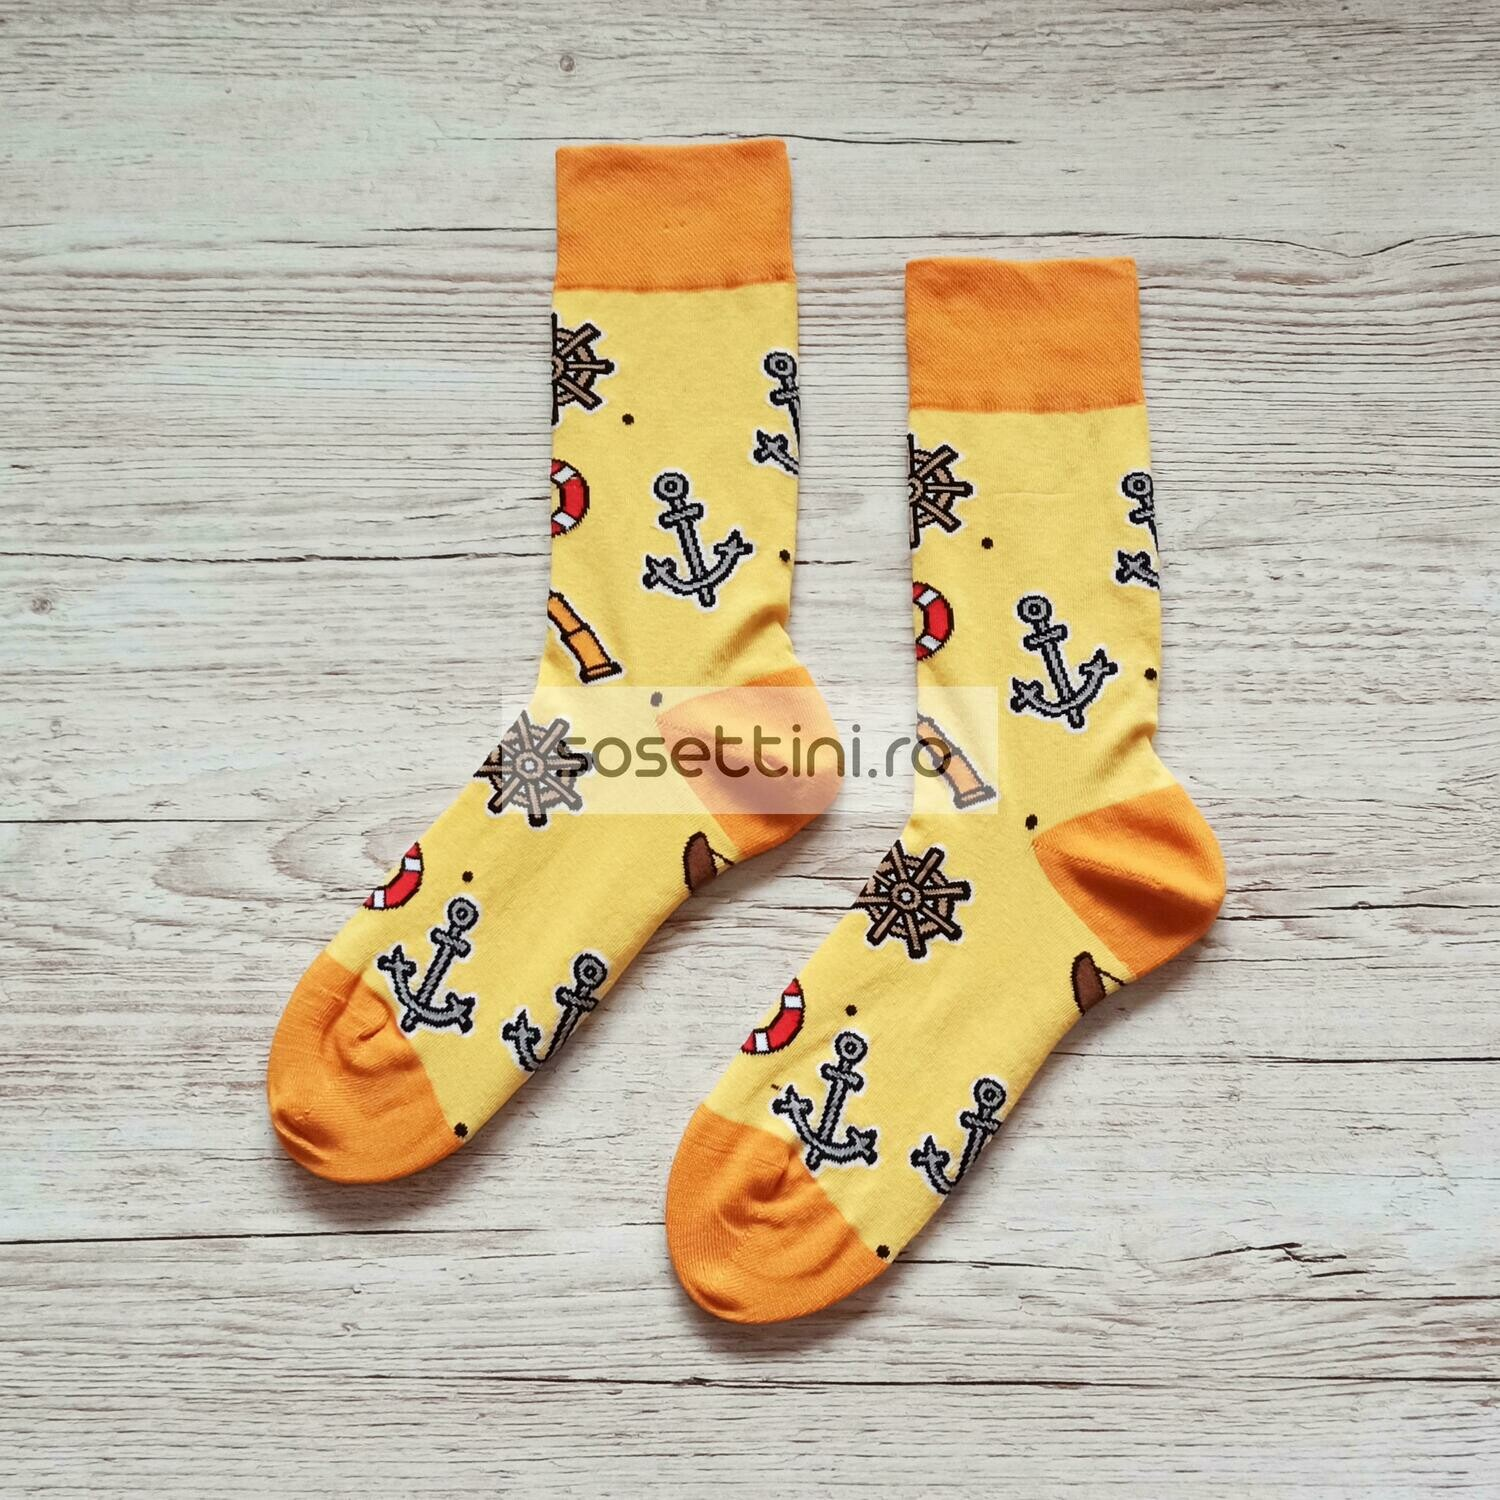 Sosete lungi colorate cu model marinar, sosete vesele marinar happy socks